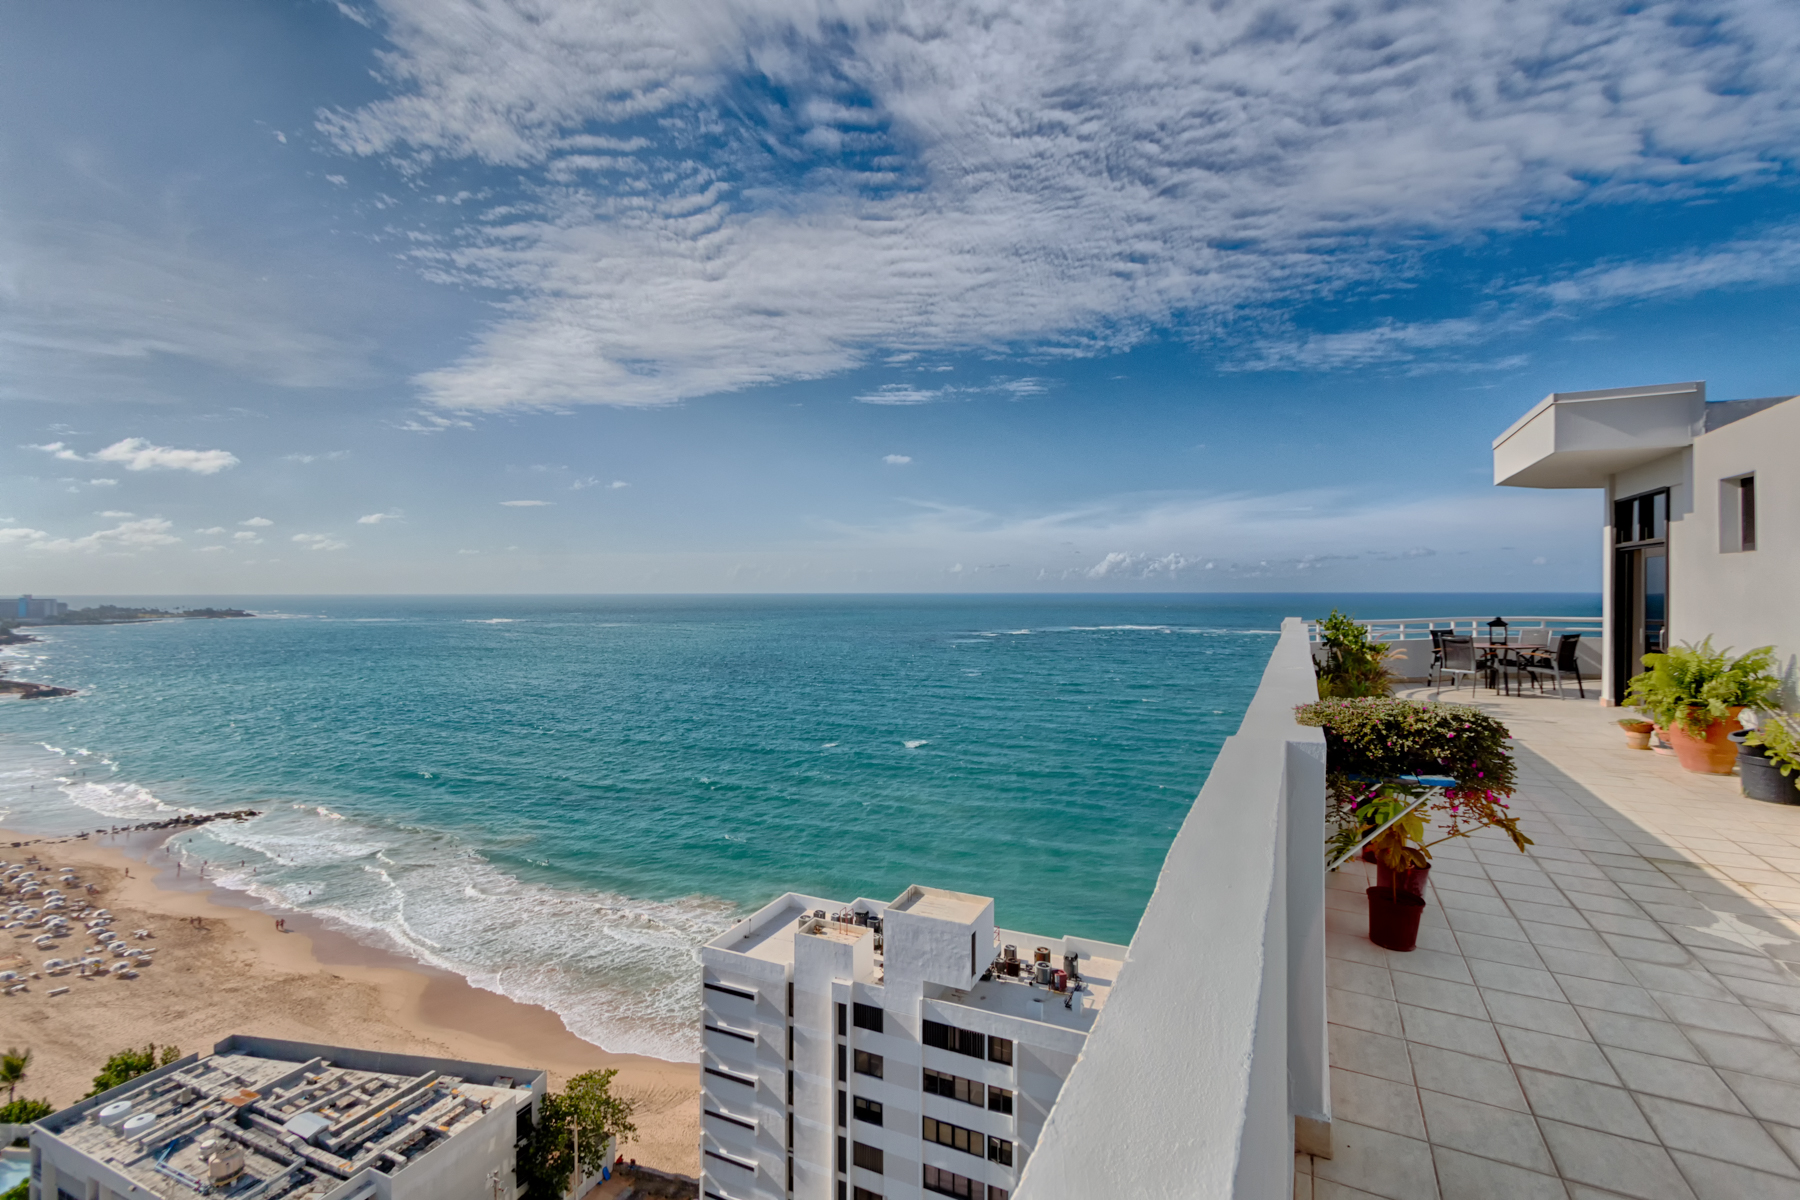 Additional photo for property listing at Candina Reef PH 2 Candina Street, Candina Reef Condominium San Juan, Puerto Rico 00907 Porto Rico